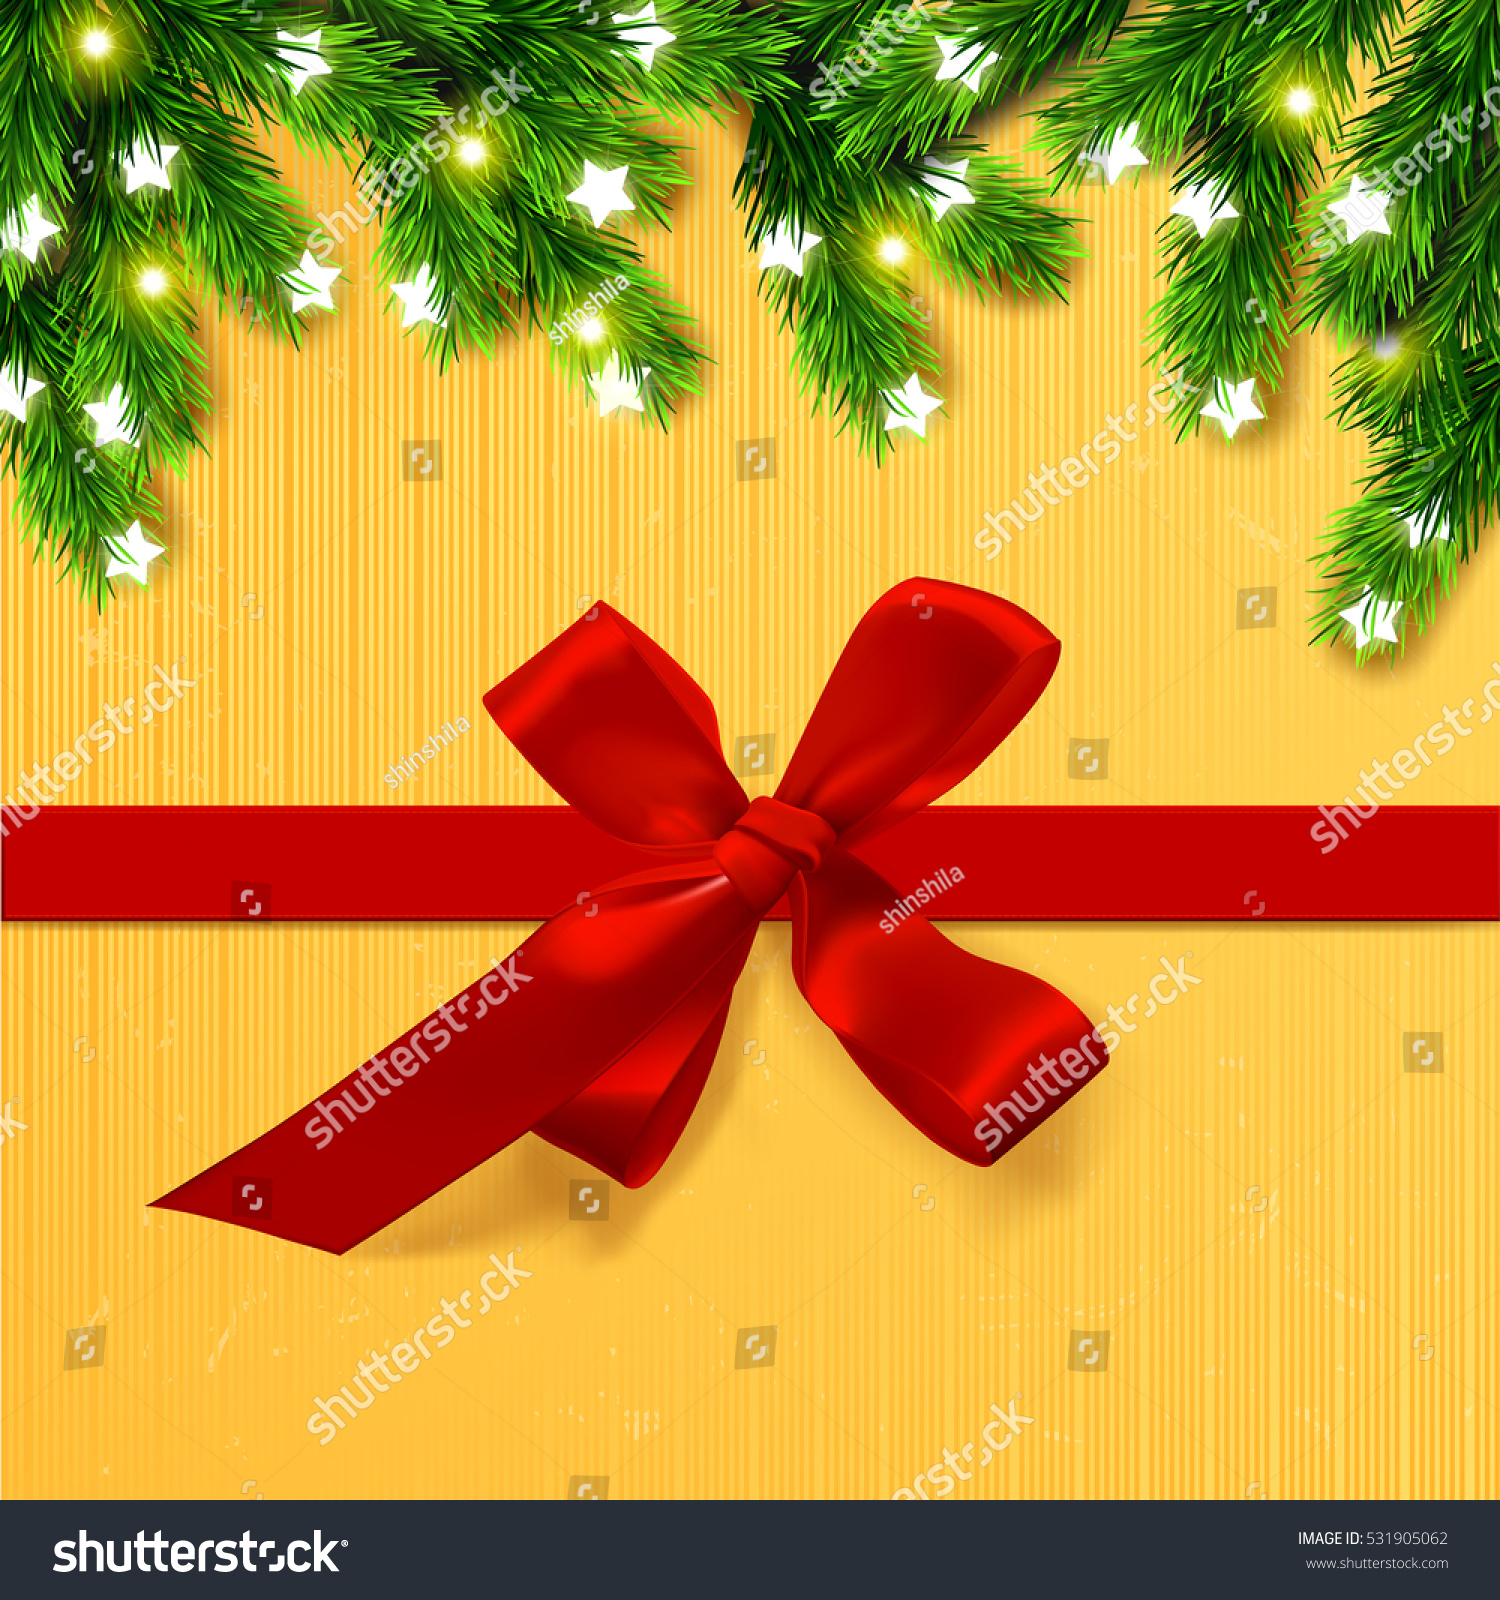 christmas border card design happy new year xmas with red bows and ribbon and glowing